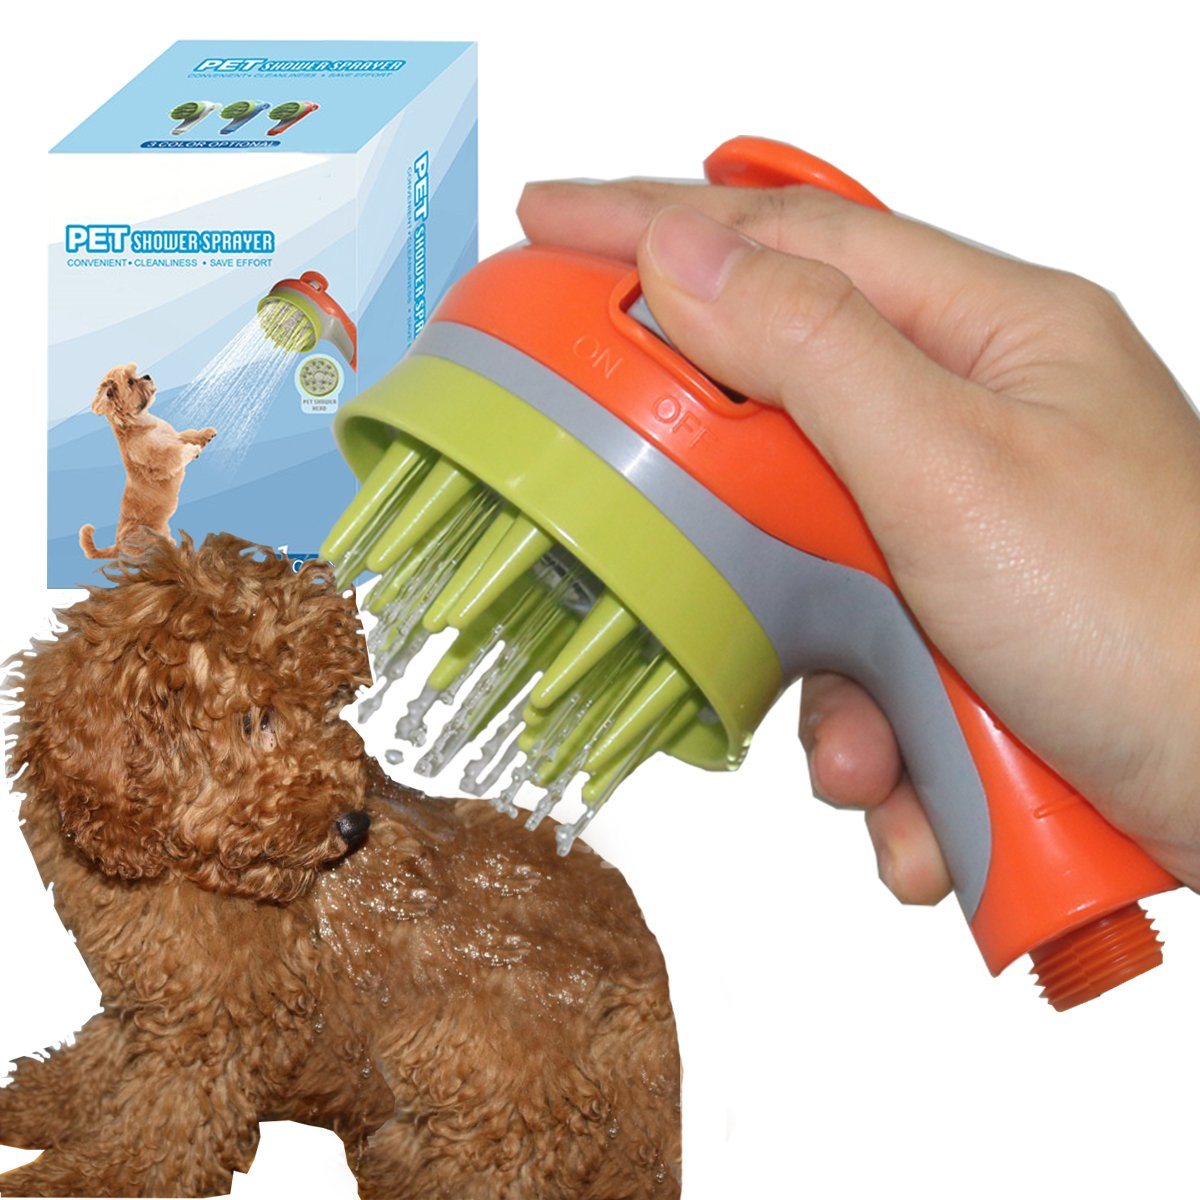 Aopet Dog Shower Sprayer Head 3 in 1 Pet Comb Massage Brush Dogs Cats Horse Grooming Bathing Tool Shower Attachment for Indoor & Outdoor Compatible with Universal Hose